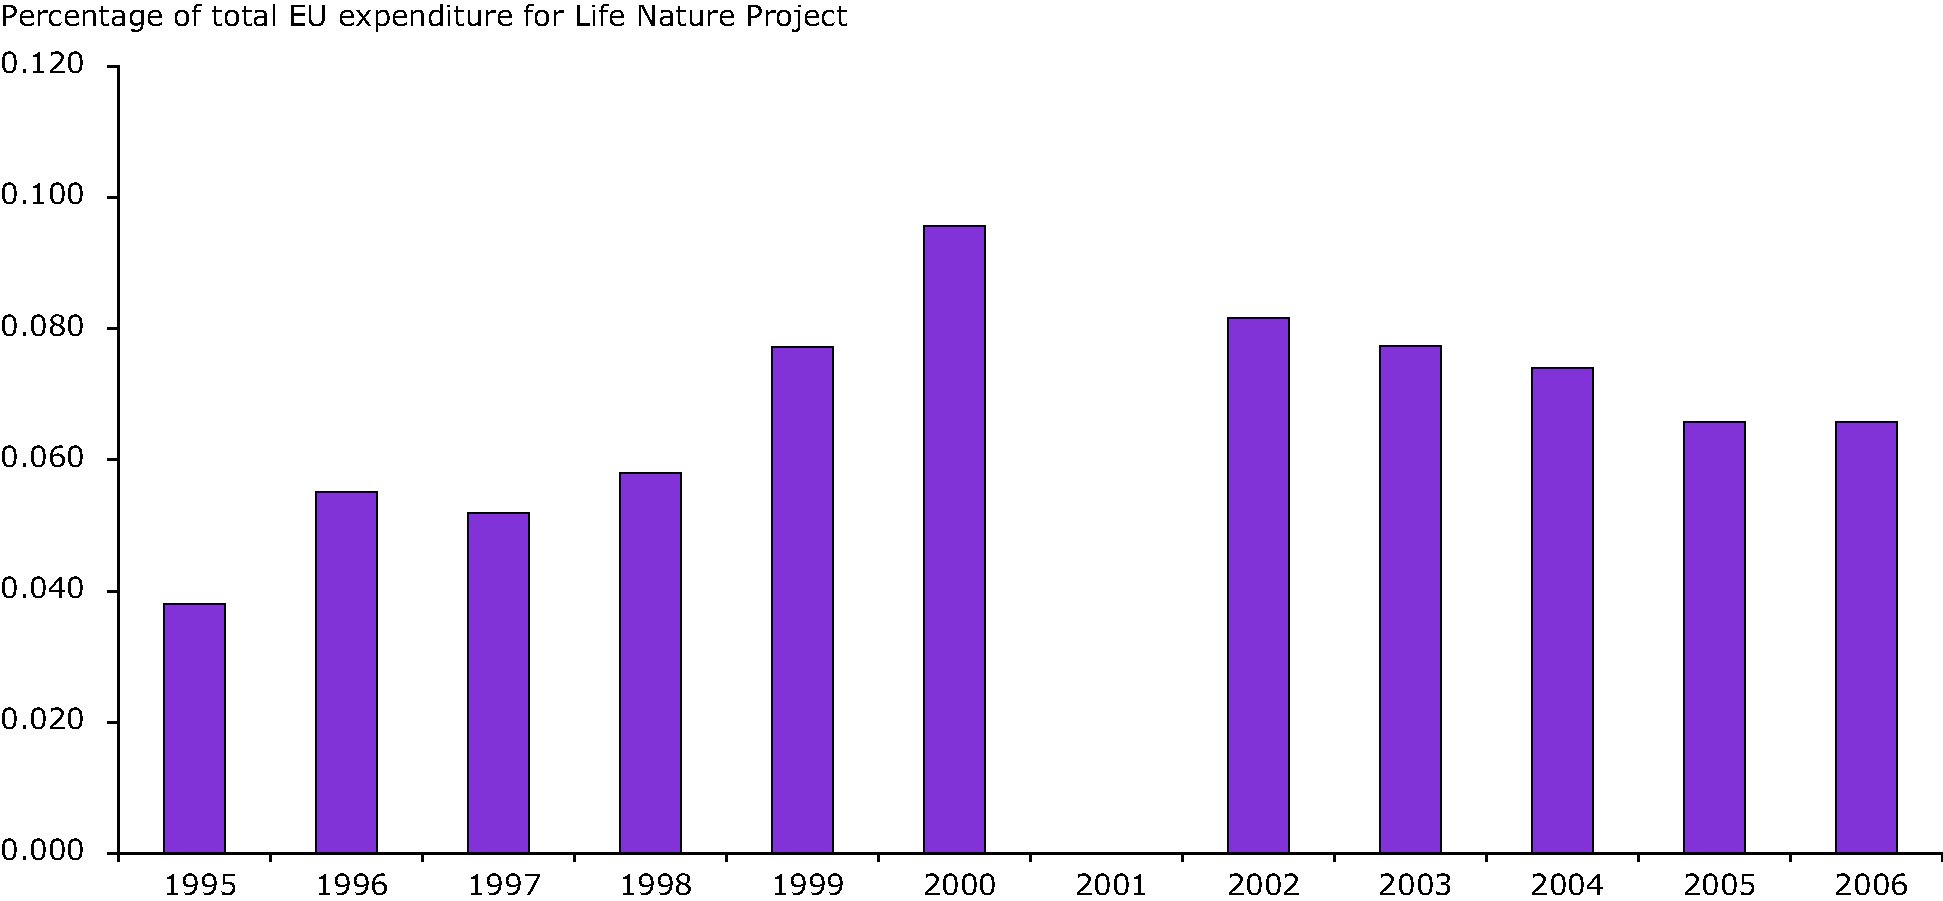 Percentage of total EU expenditure on the Life project from 1995 to 2006